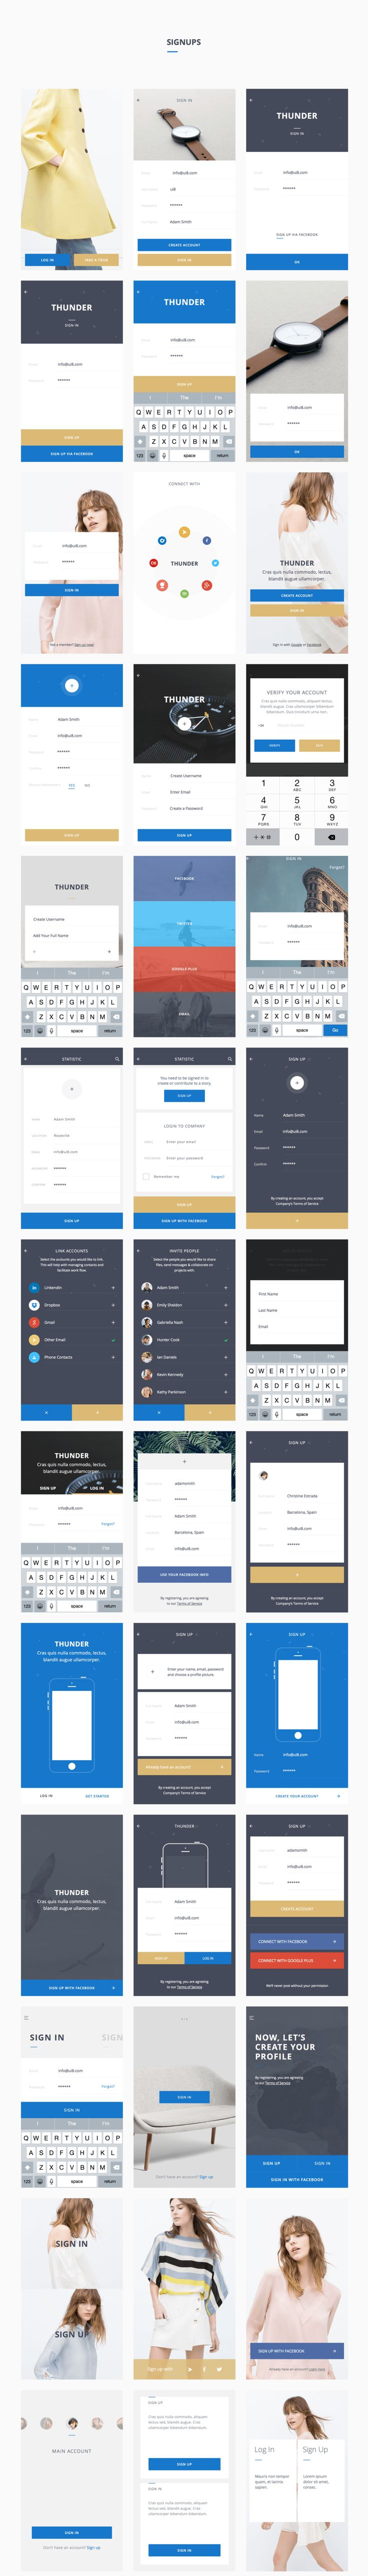 Thunder UI Kit